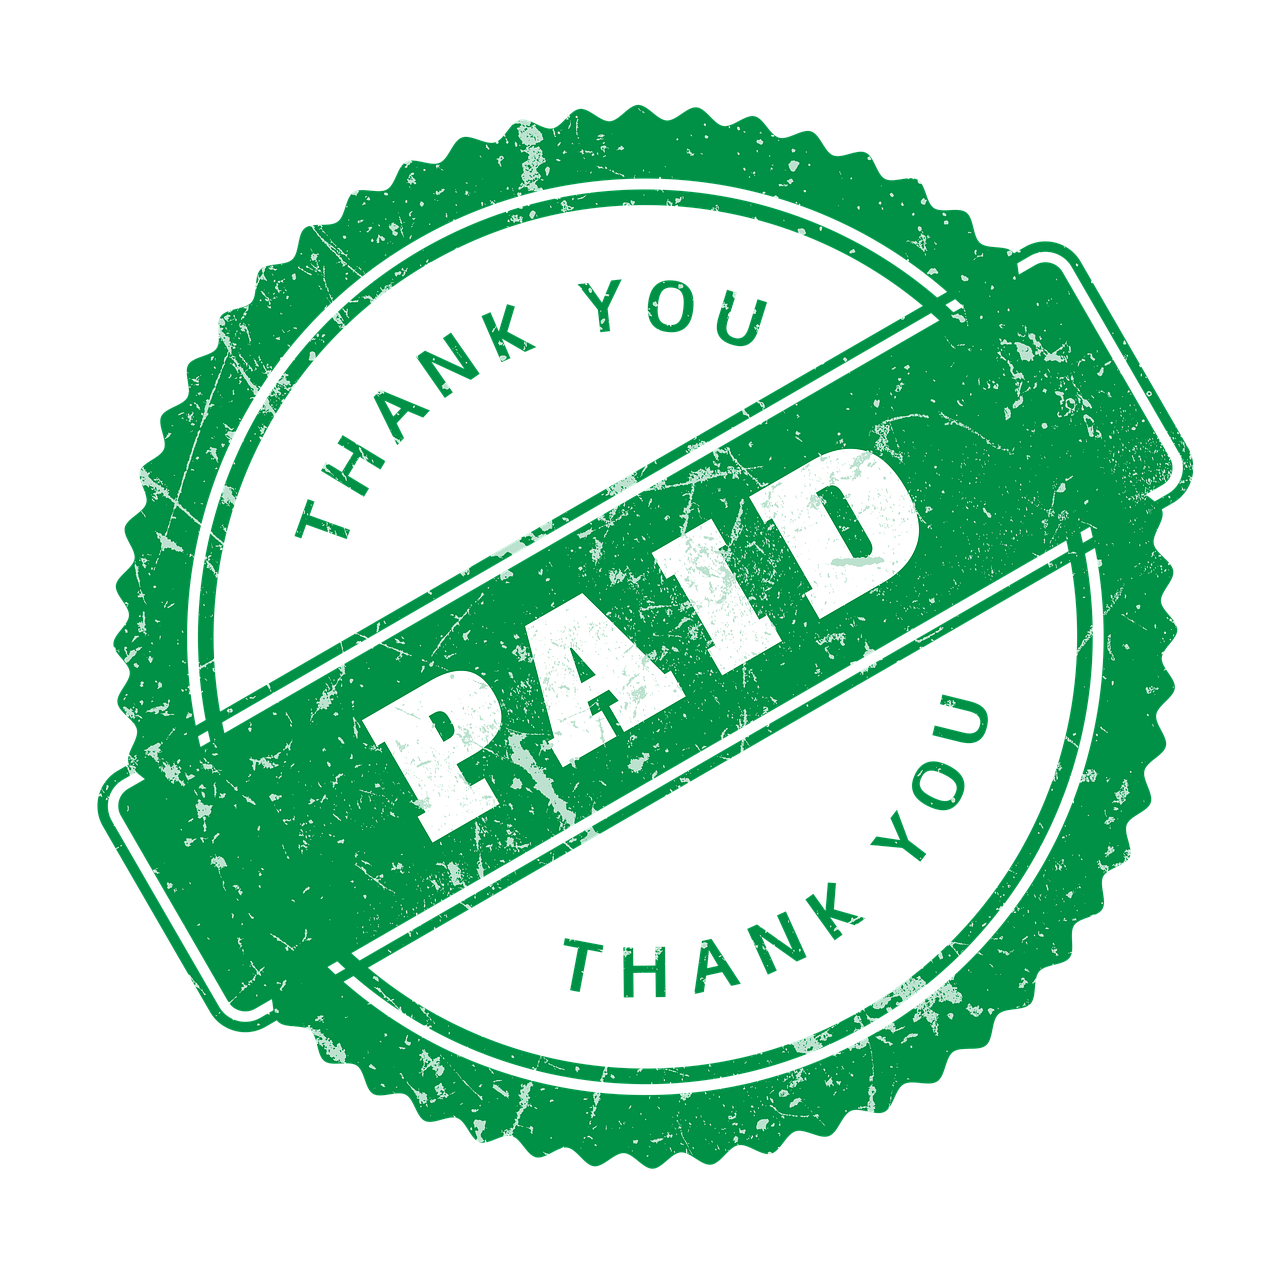 paid, rubber stamp, thank you-5025785.jpg